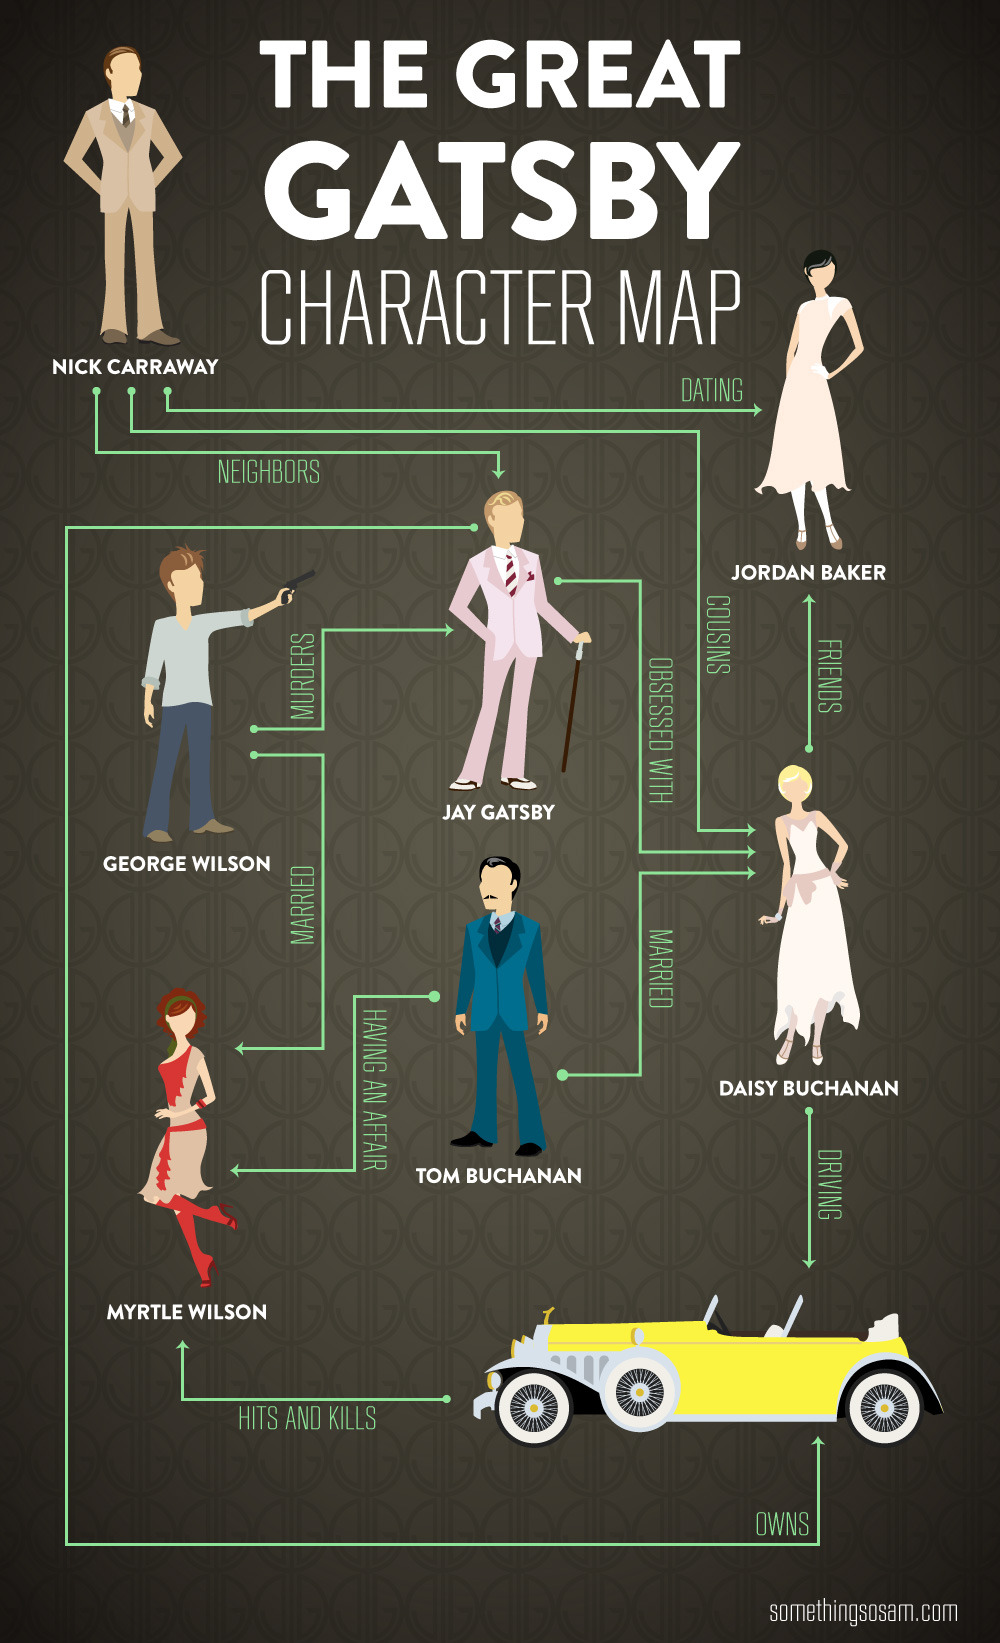 hazelweatherfield:  pagely:  The Great Gatsby character map created by somethingsosam  This is really awesome.